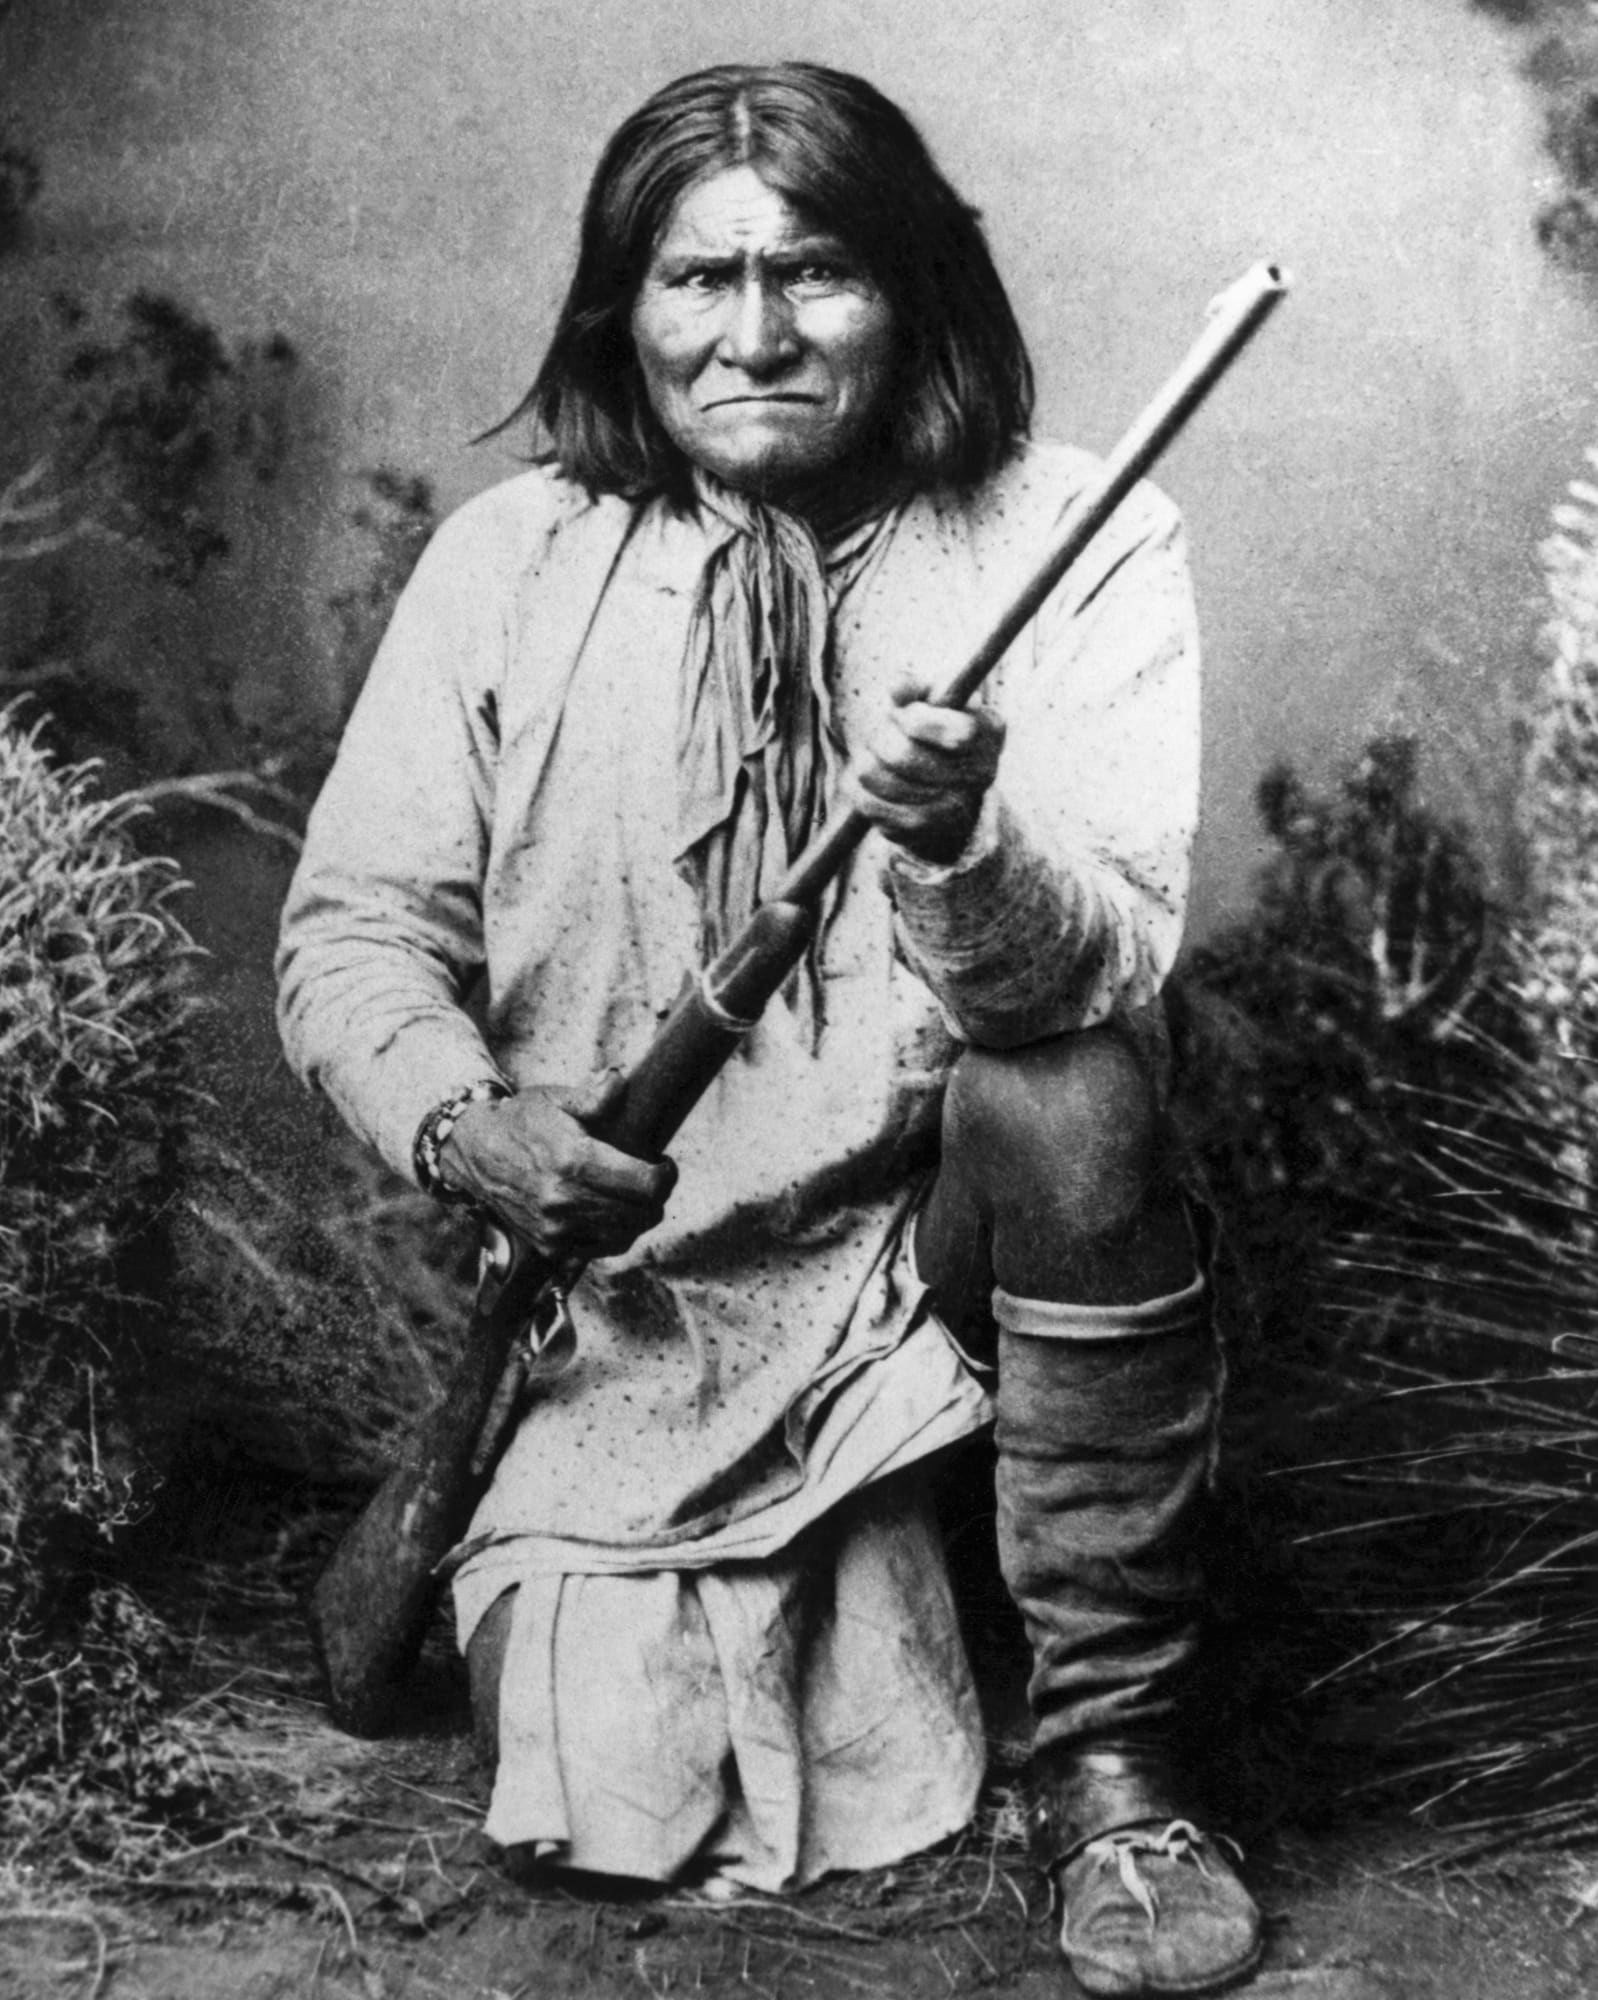 Geronimo, an Apache leader who was fearless in battle, posing with a rifle.